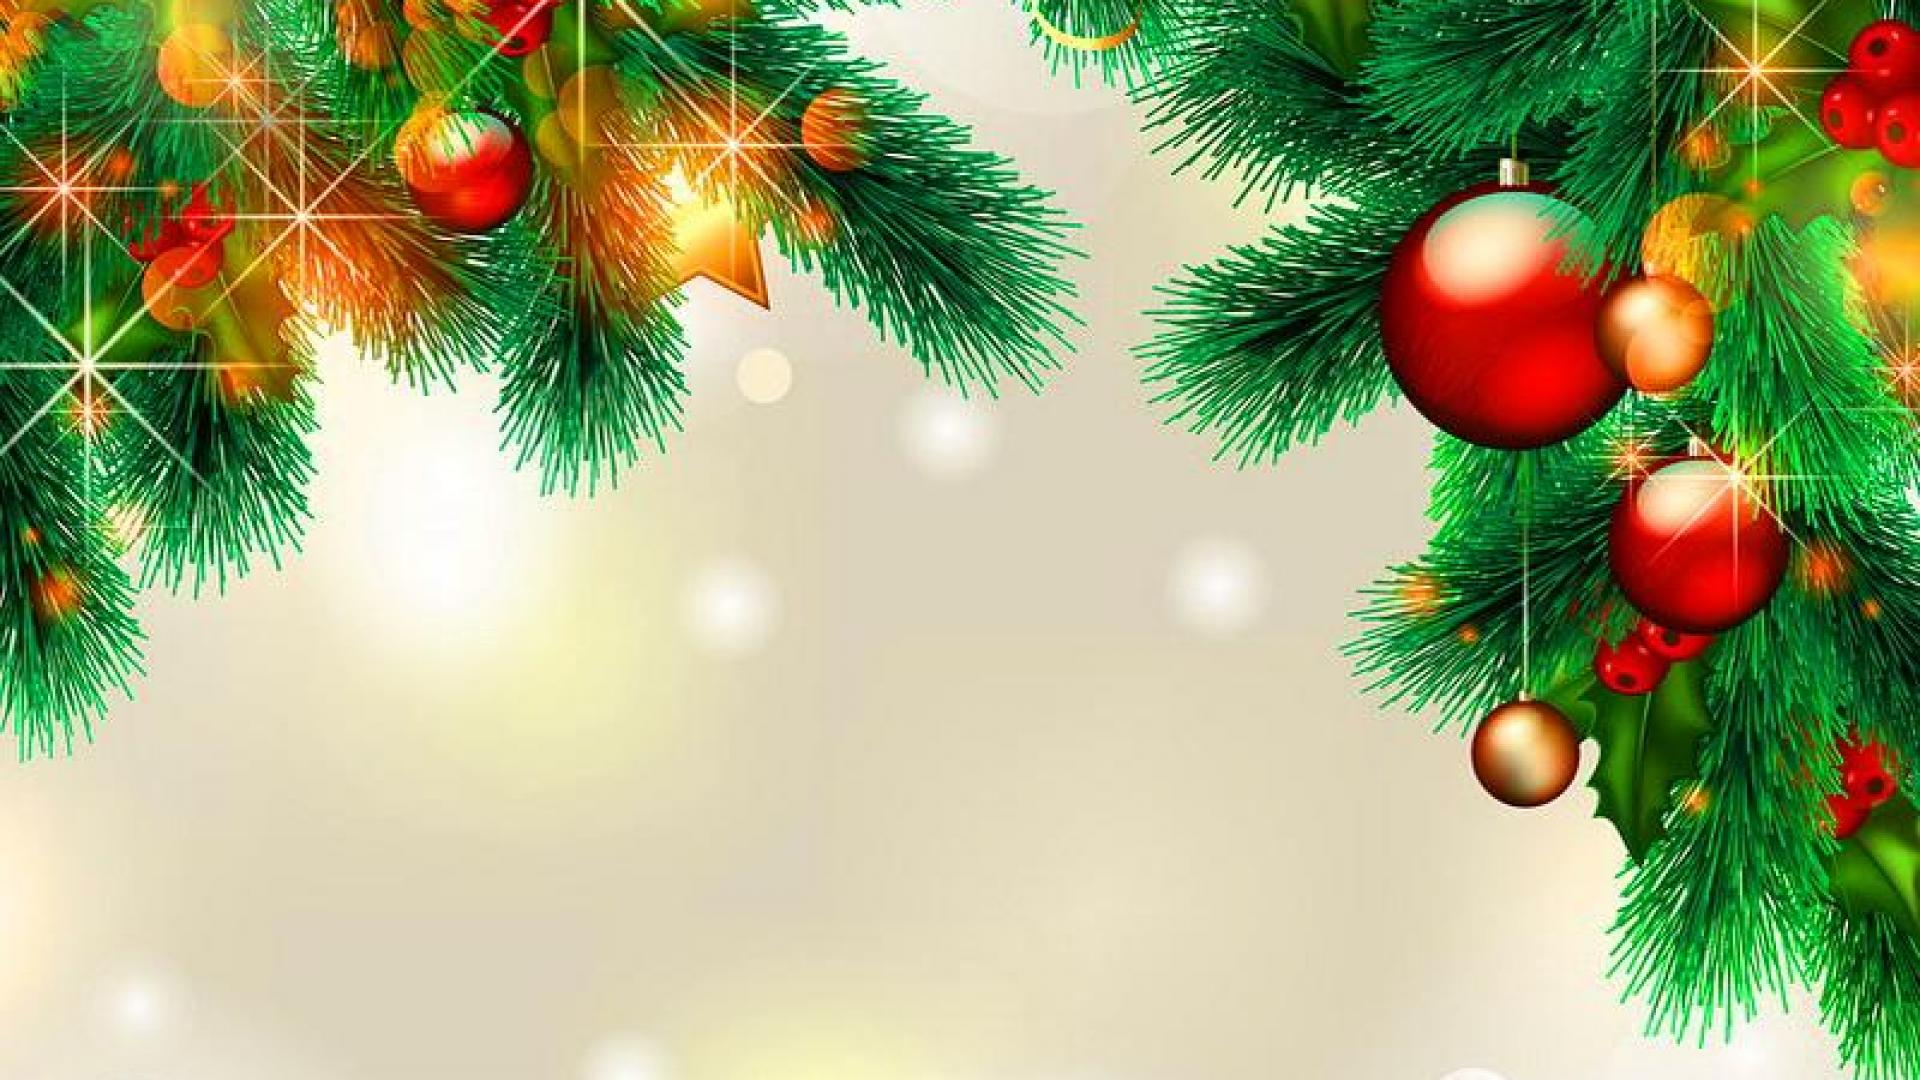 Free Christmas Background Images, Download Free Clip Art.